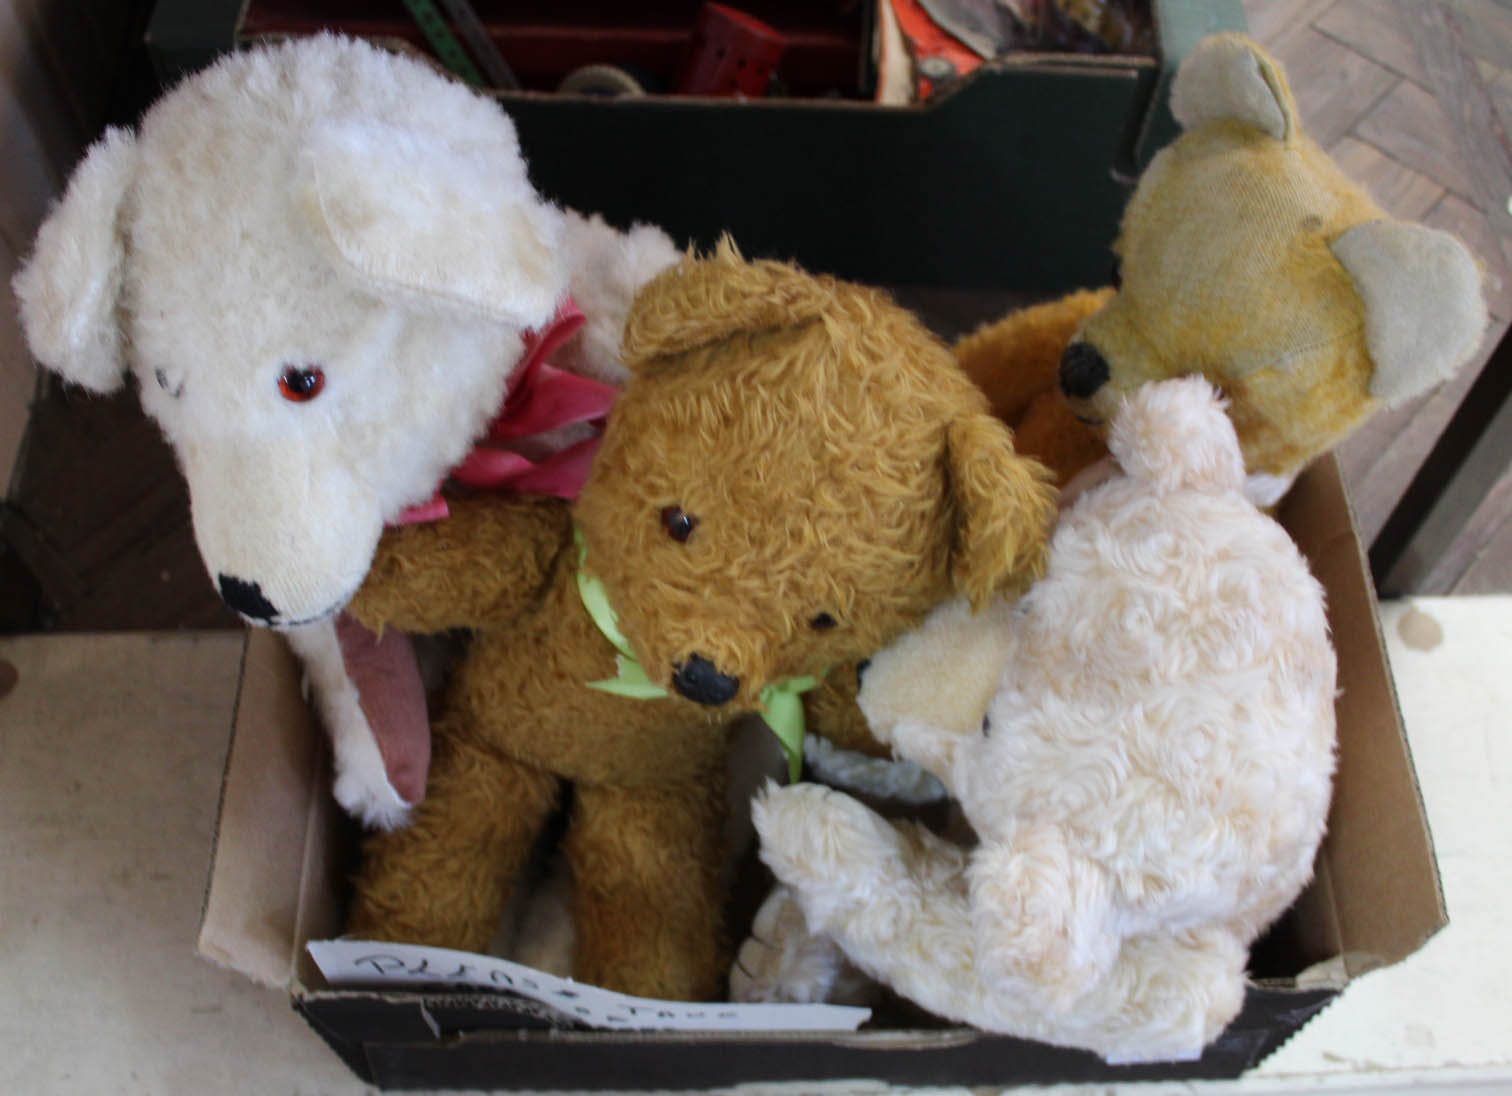 Lot 39 - Soft bears to include Pixie Toys, Bebo Blossom Toys musical Brahms lullaby,